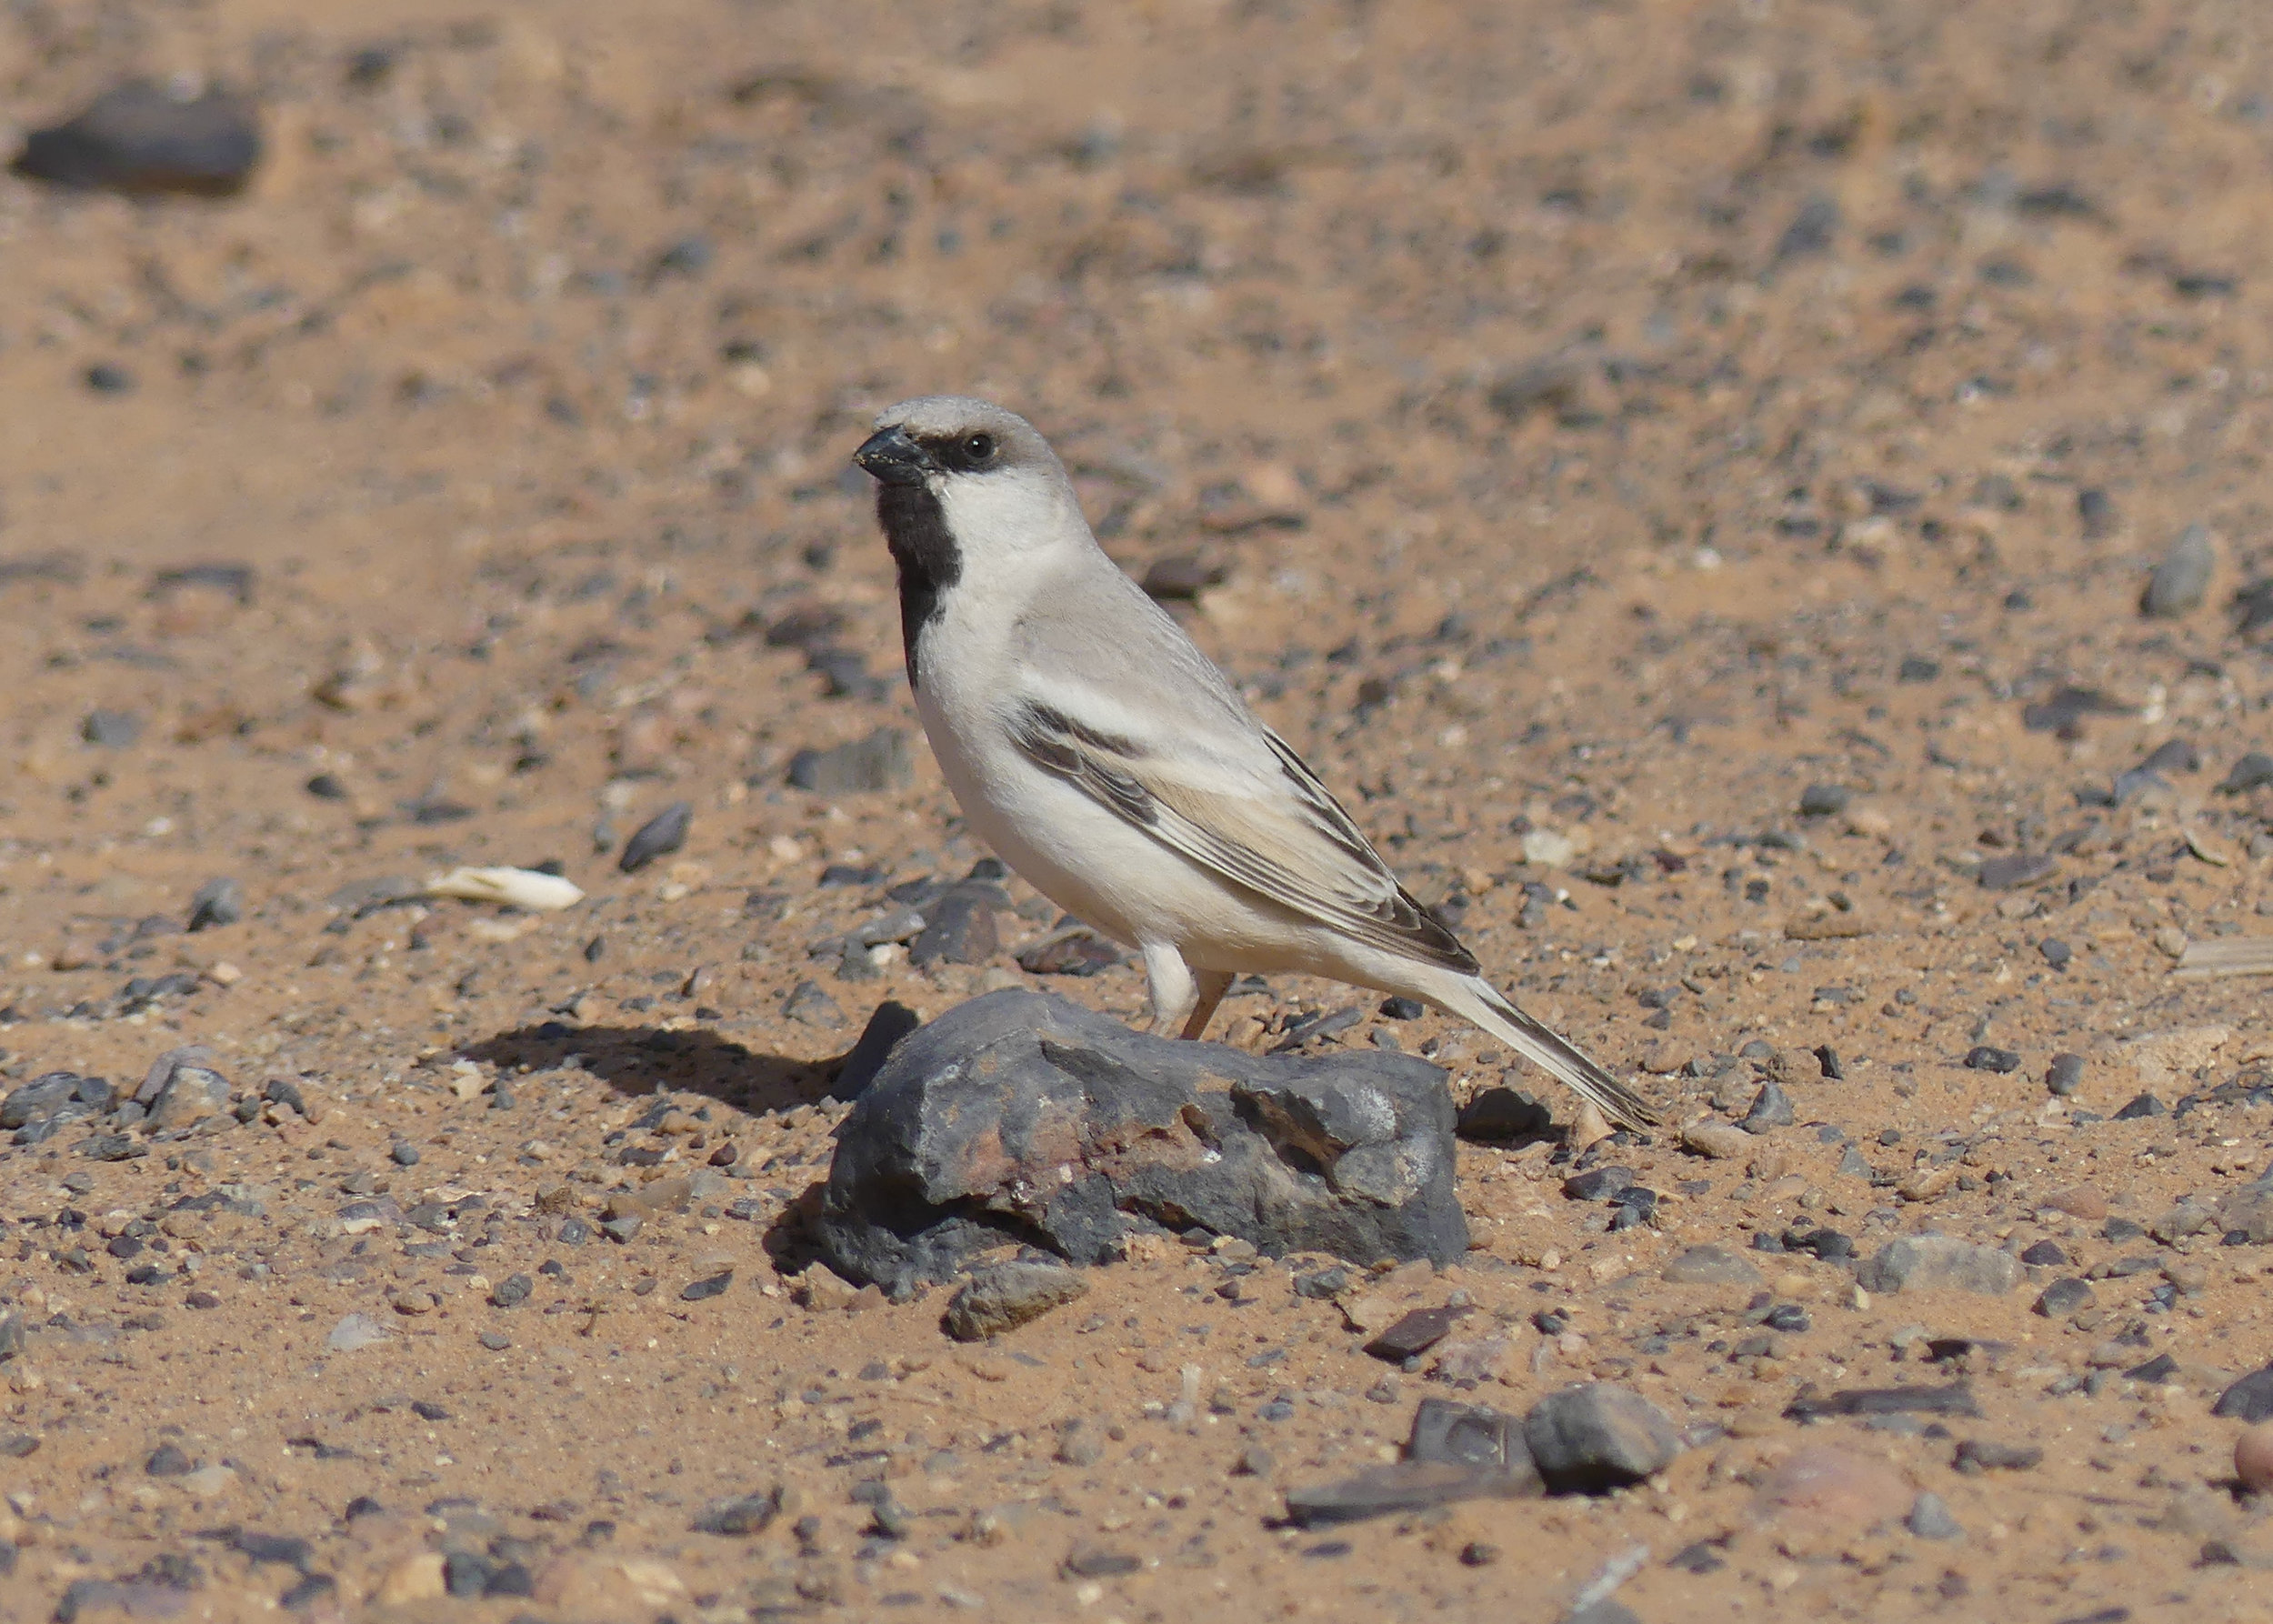 16_Desert-Sparrow-male-Erg-Chebbi.jpg